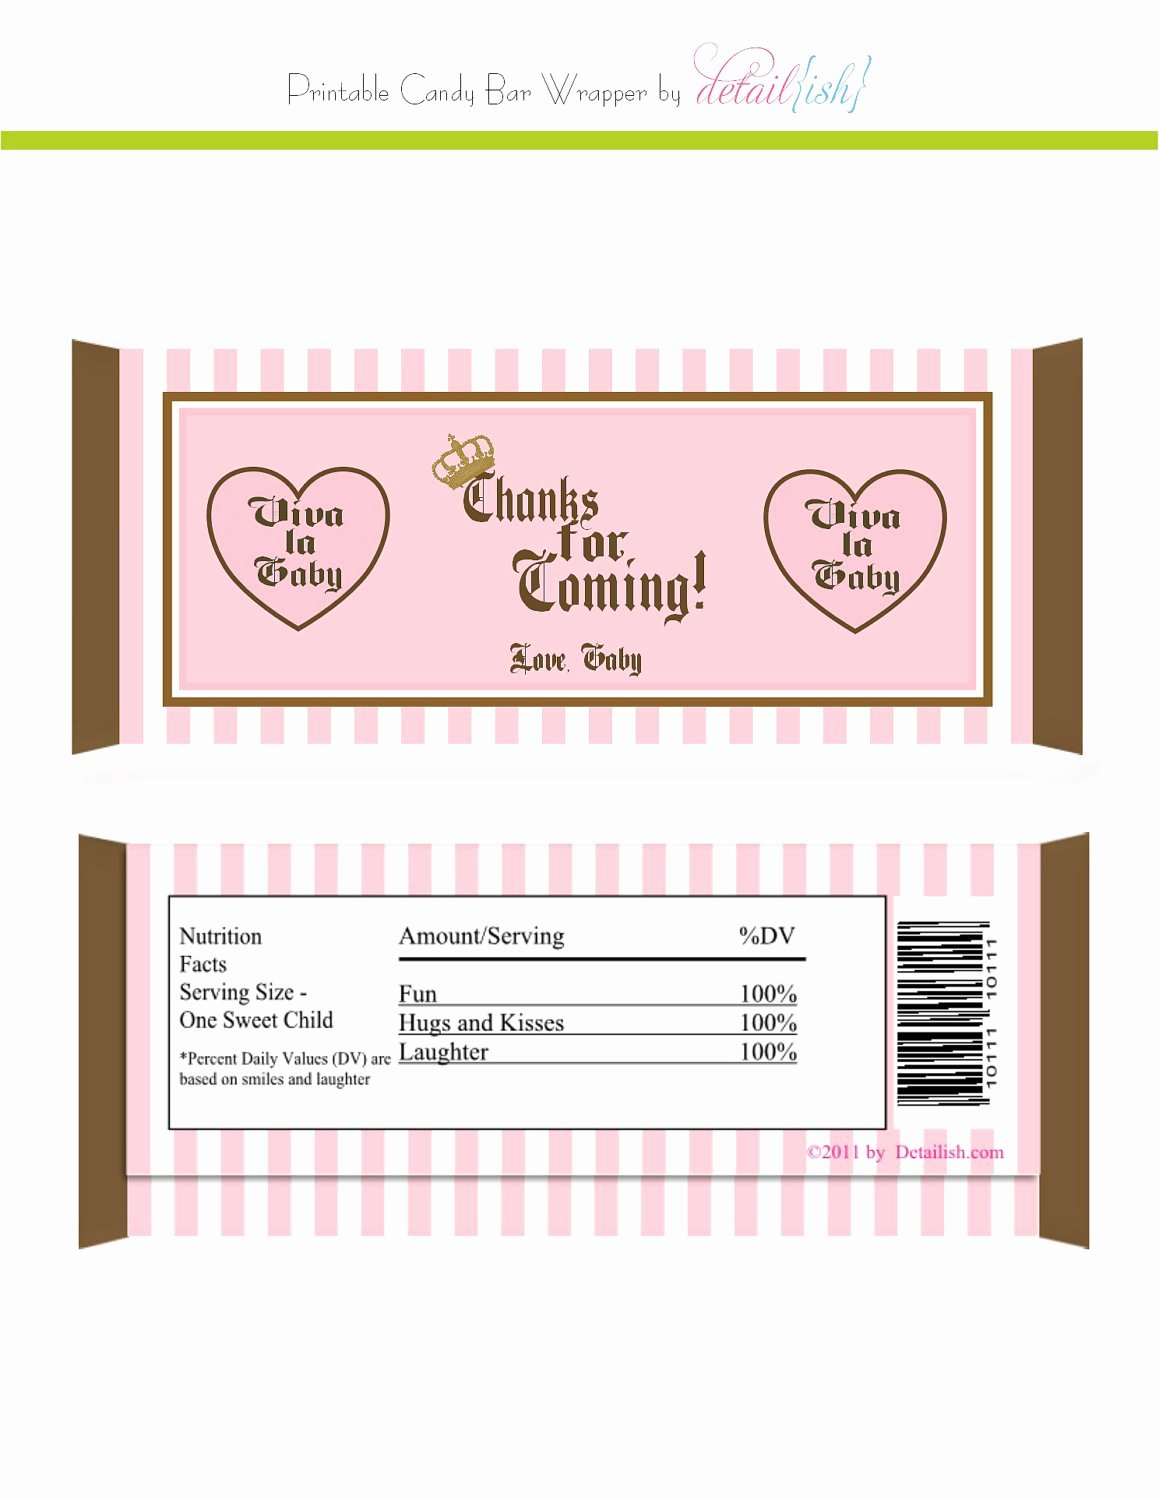 Chocolate Bar Wrappers Template Luxury Items Similar to Juicy Couture Inspired Candy Bar Wrapper